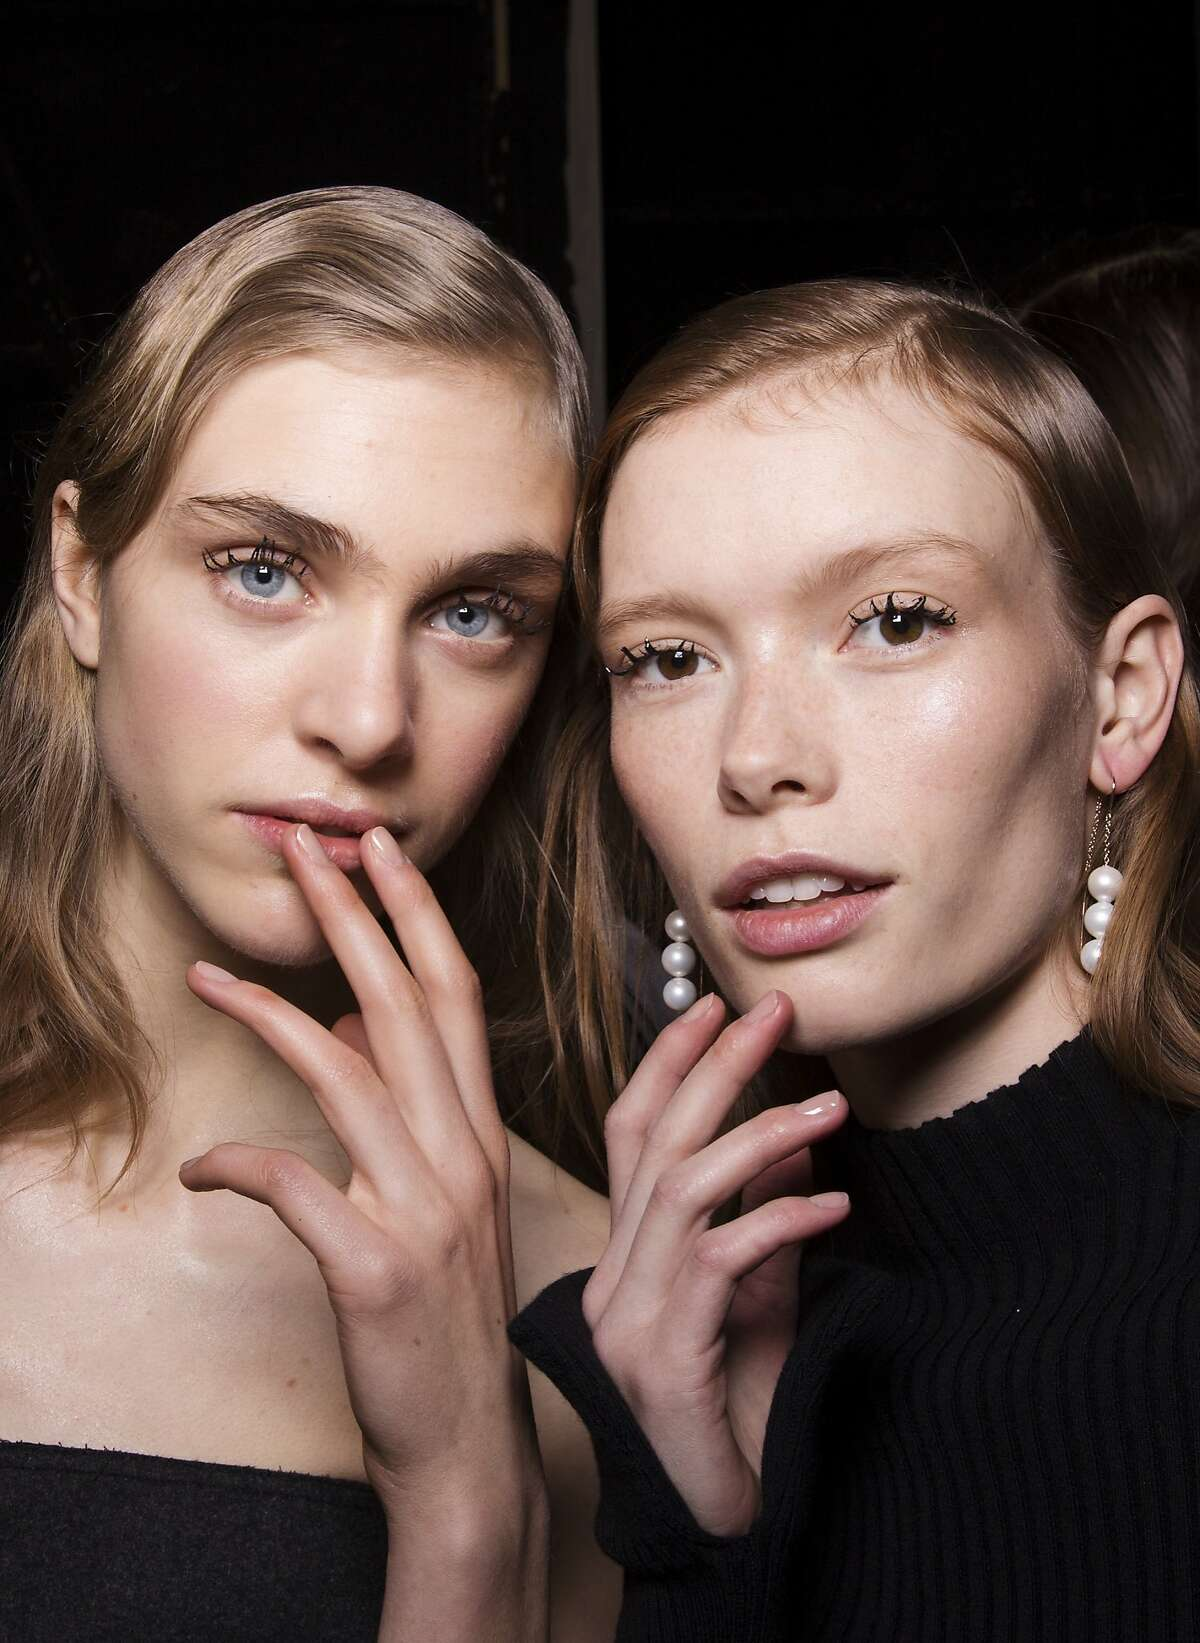 To balance the clumpy tarantula lashes on the models at Jason Wu, Deborah Lippmann used her taupe creme Fashion polish to give the models subdued nude nails.